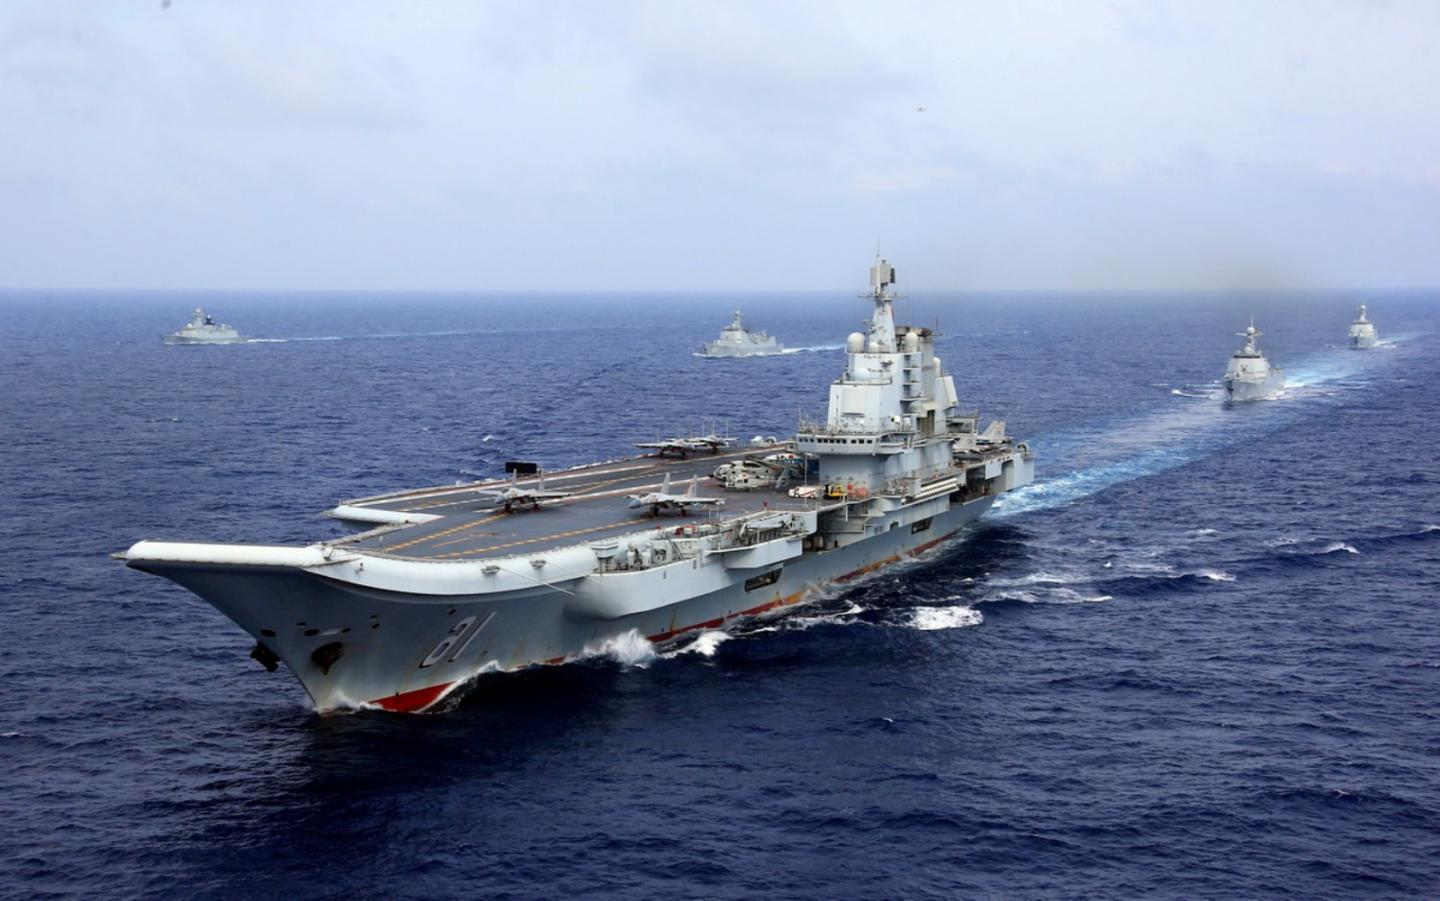 Chinas Navy is Going Blue Water (Starting With 6 Aircraft Carriers)